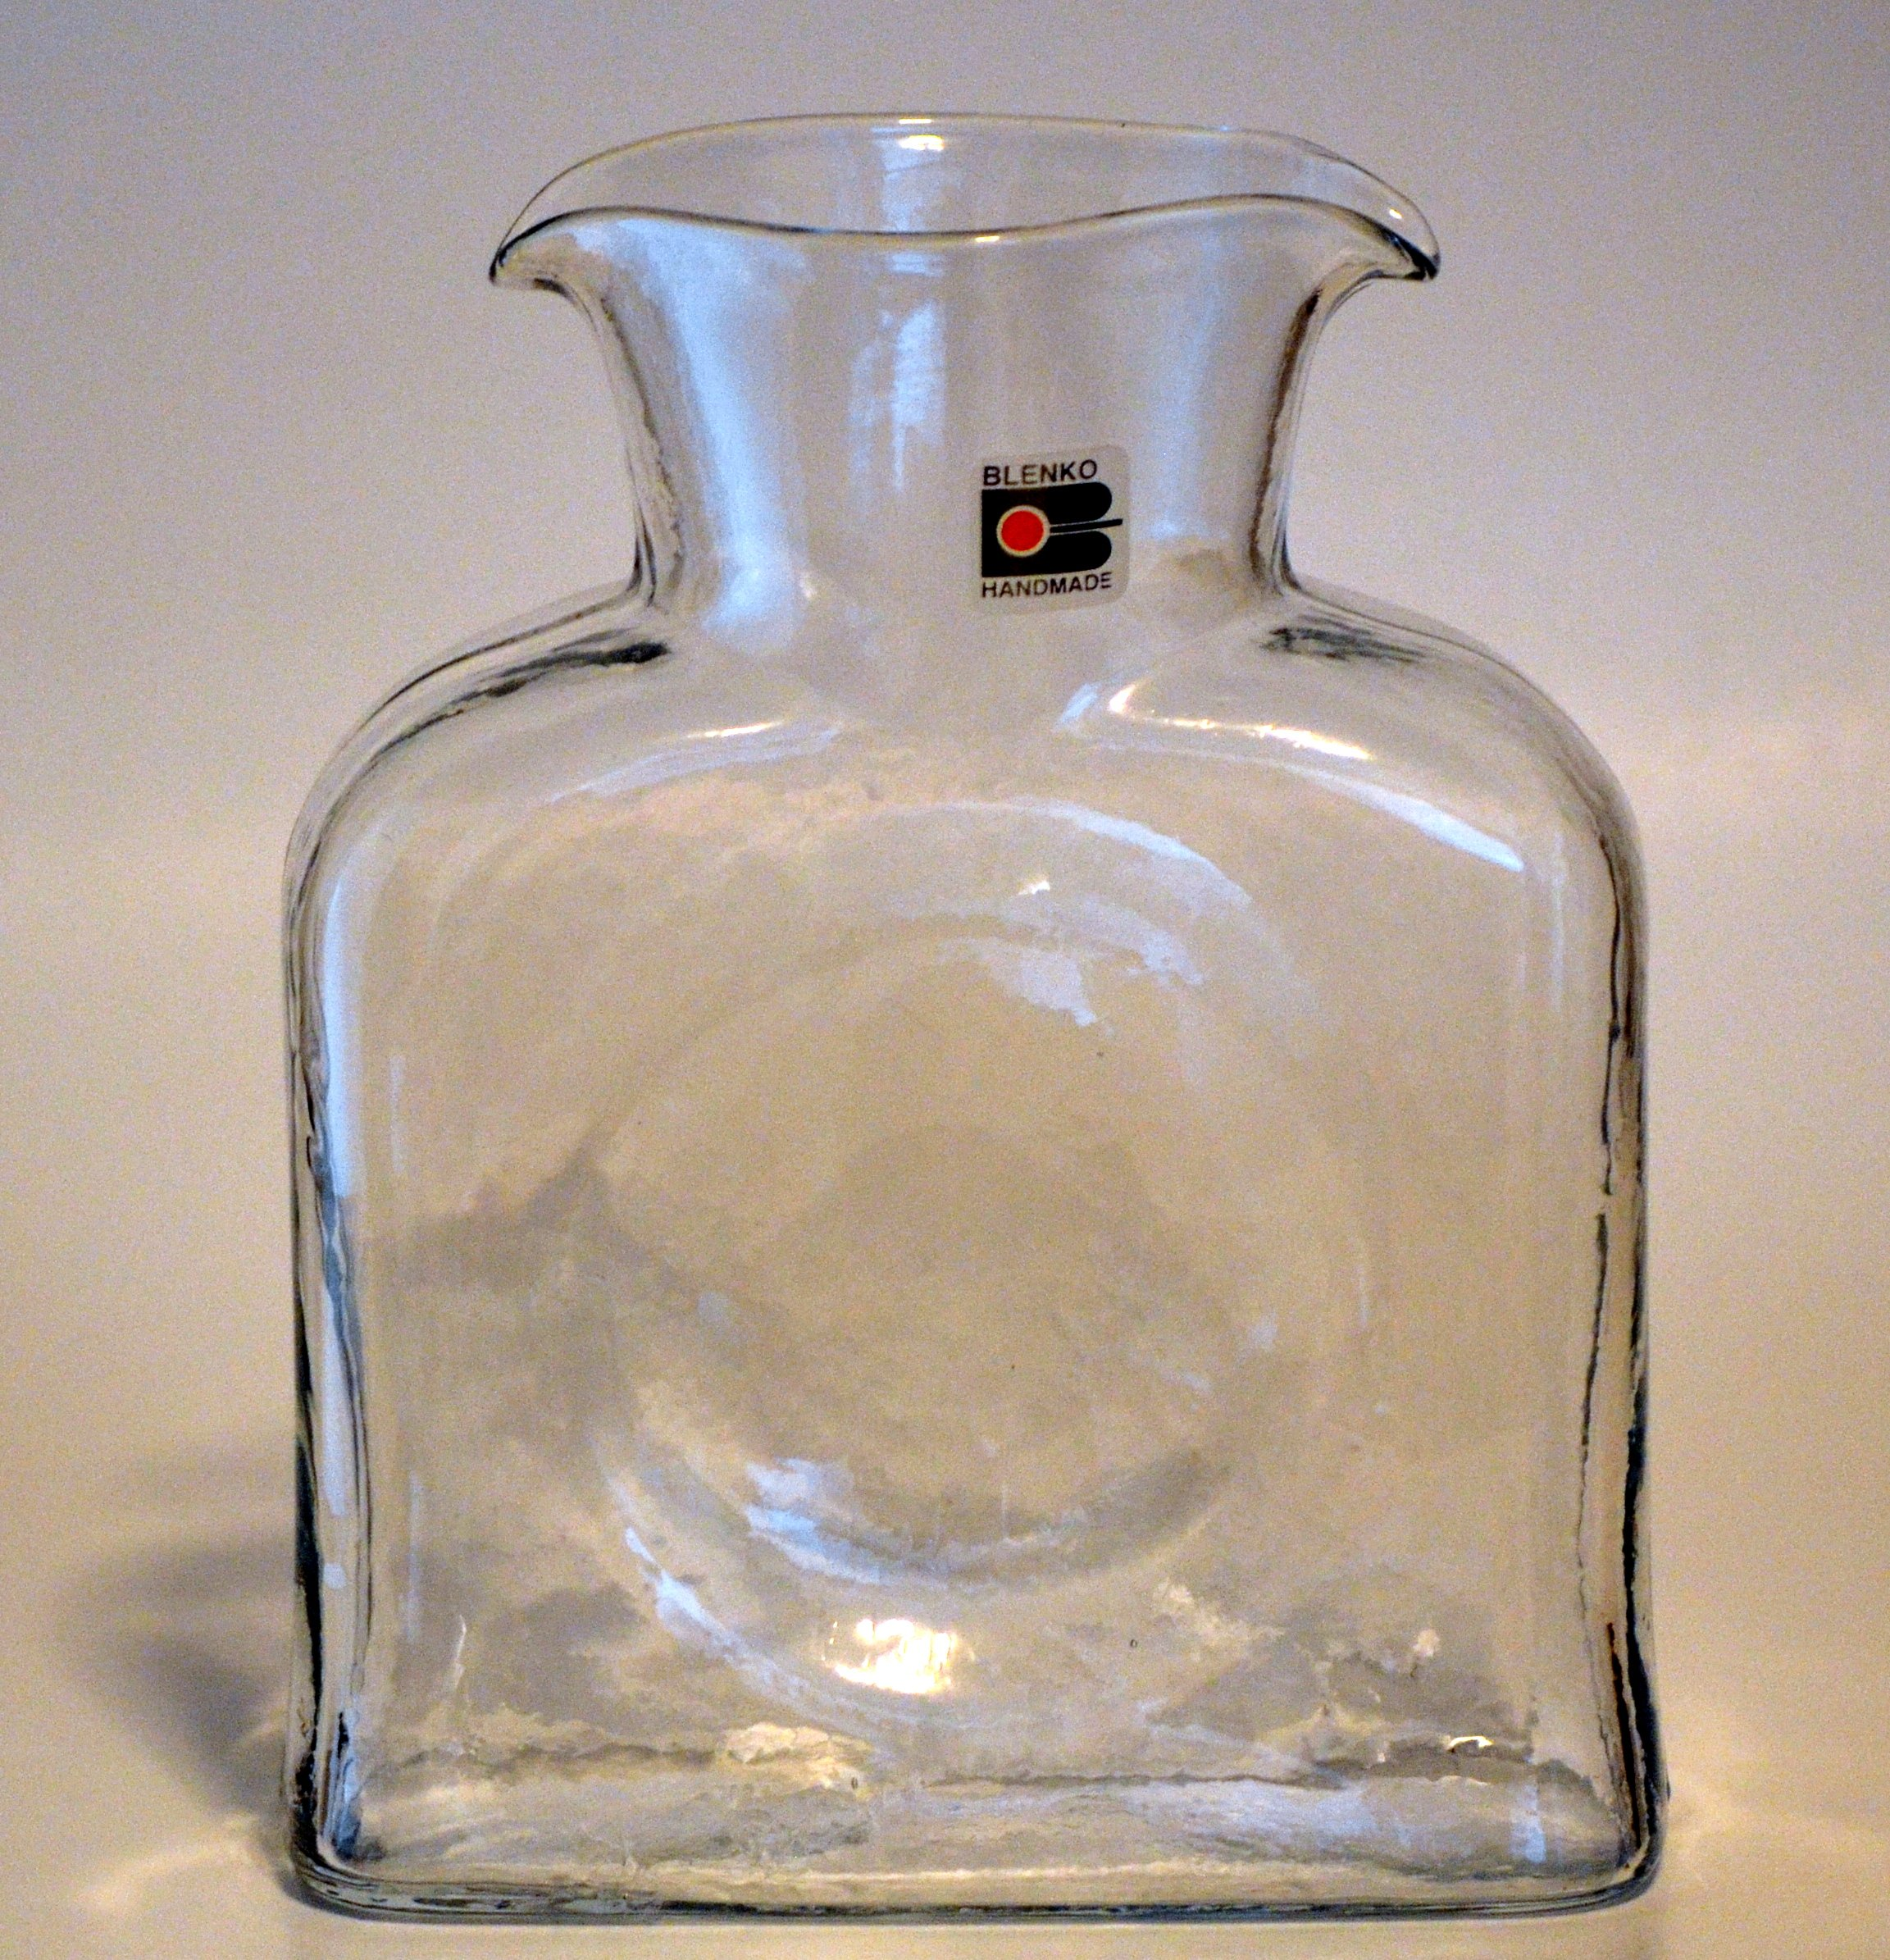 Blenko Art Glass Water Carafe Bottle Vase Crystal Clear